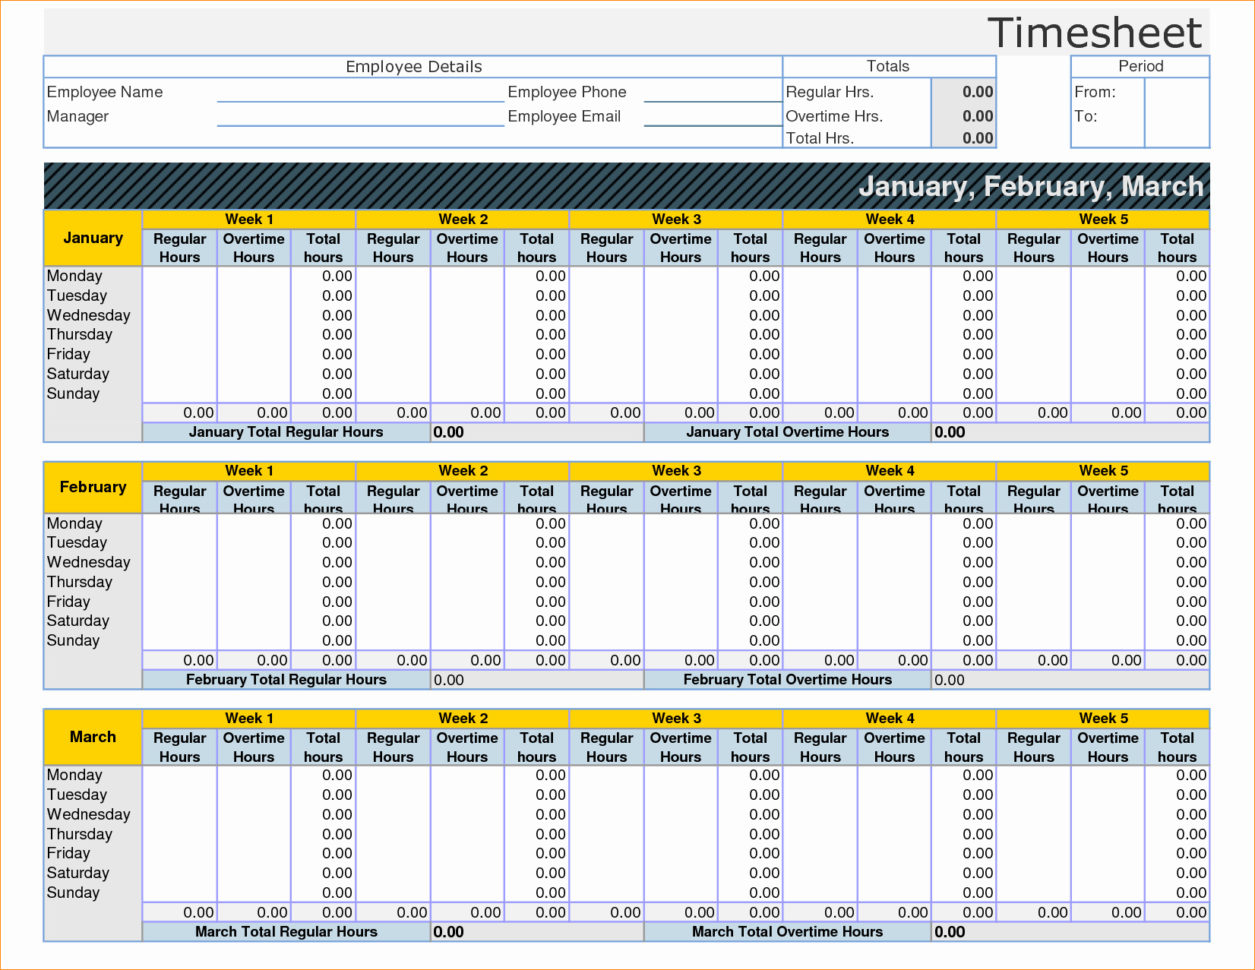 Comp Time Tracking Spreadsheet Download Within Timeracking Spreadsheet Collections Daily Comp Download Sample Free